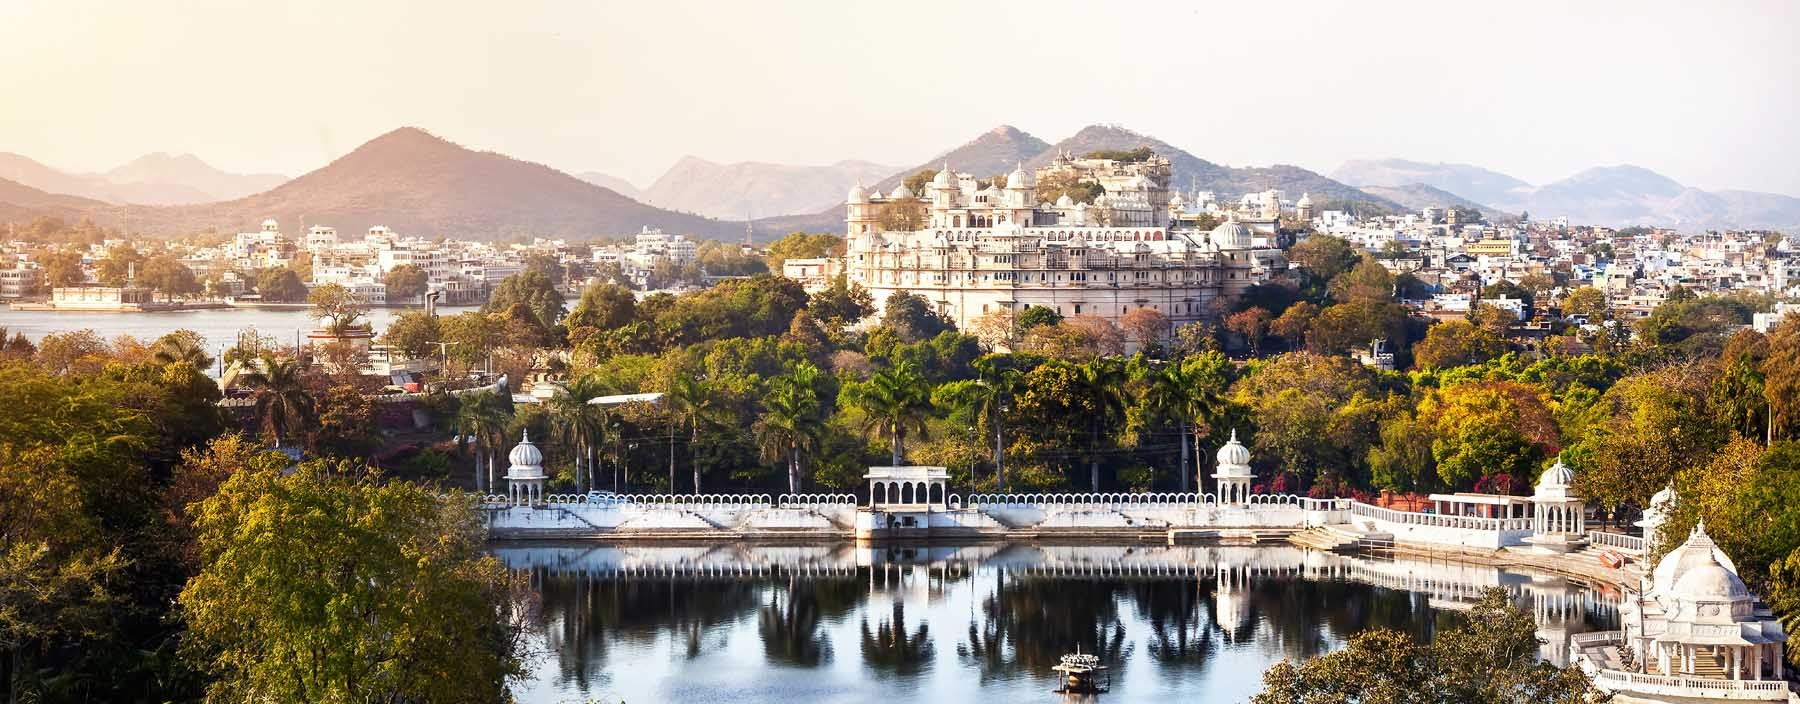 in, udaipur, lake pichola with city palace view.jpg